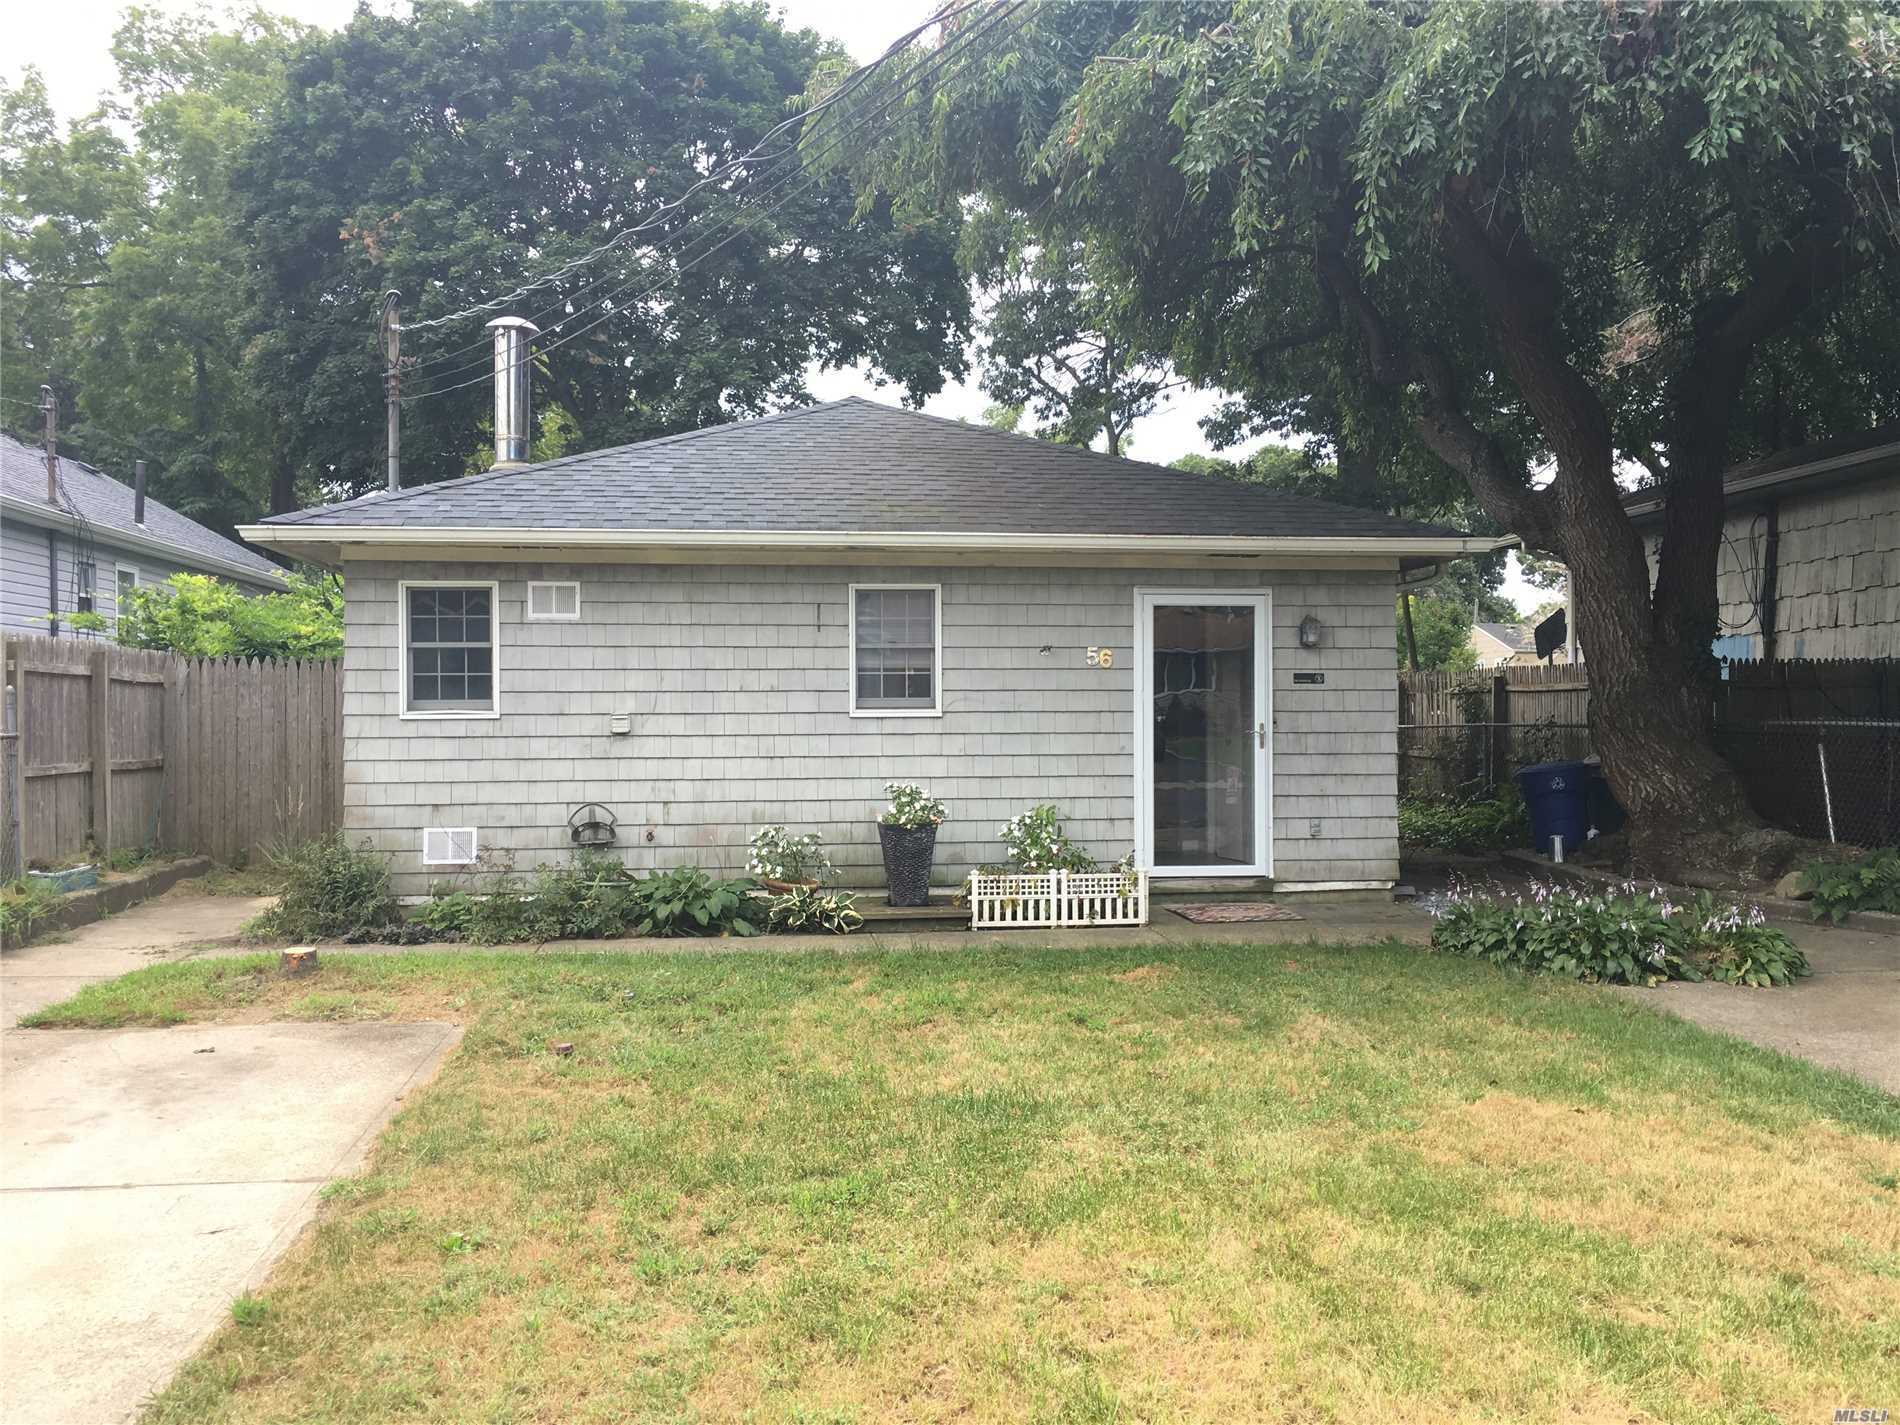 One Of Kind***Massive 2/3 Br 1700 Sq Ft Ranch***Former Mother Daughter-Duplex** Was Split As 2 Identical 1Br Units** (Mirror Image) = 3 Huge Rooms=kit, 1 Br, Lr, Bath Laundry. Both Ground Level W/No Stairs! Dual Driveway, Easy To Maintain Property Fenced- Presently 6 Rooms 2.3 Br Or Office W/ 2 King Size Bedrooms Dbl Closets, Kitchen, Formal Dinning Room, Huge Living Room, 2 Baths **Dividing Wall Is Now Door Way Ties It All Together- New Roof 2010 New Boiler 2016 Call For Tour Now!